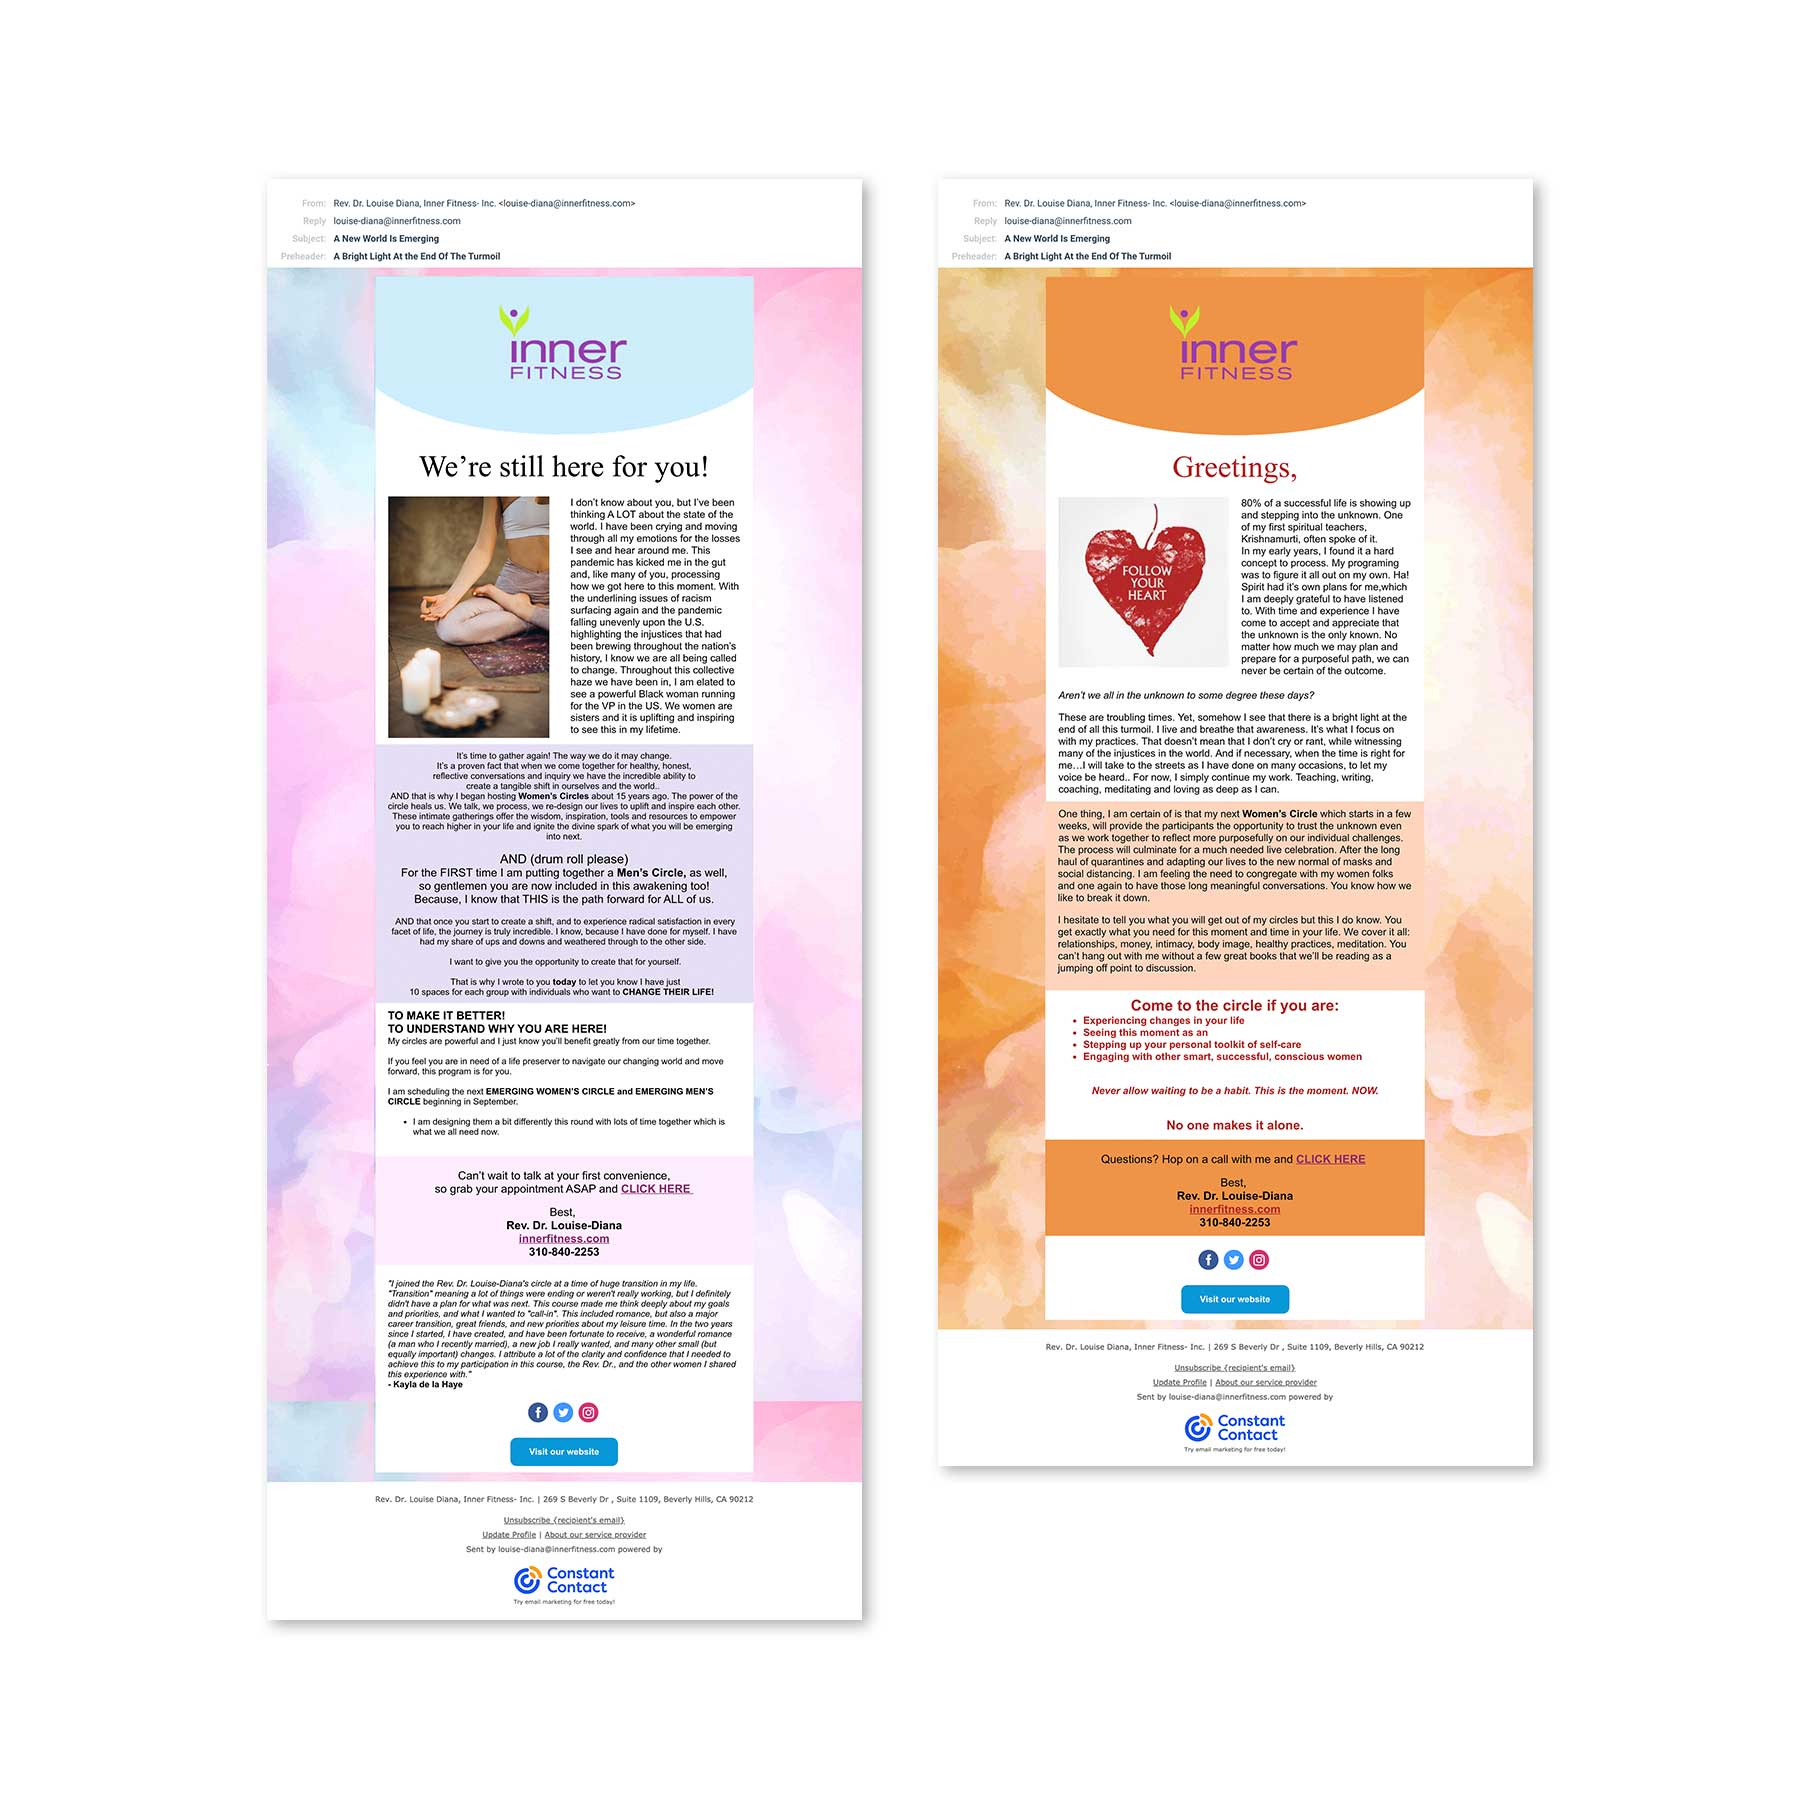 Inner Fitness Yoga Constant Contact Ads